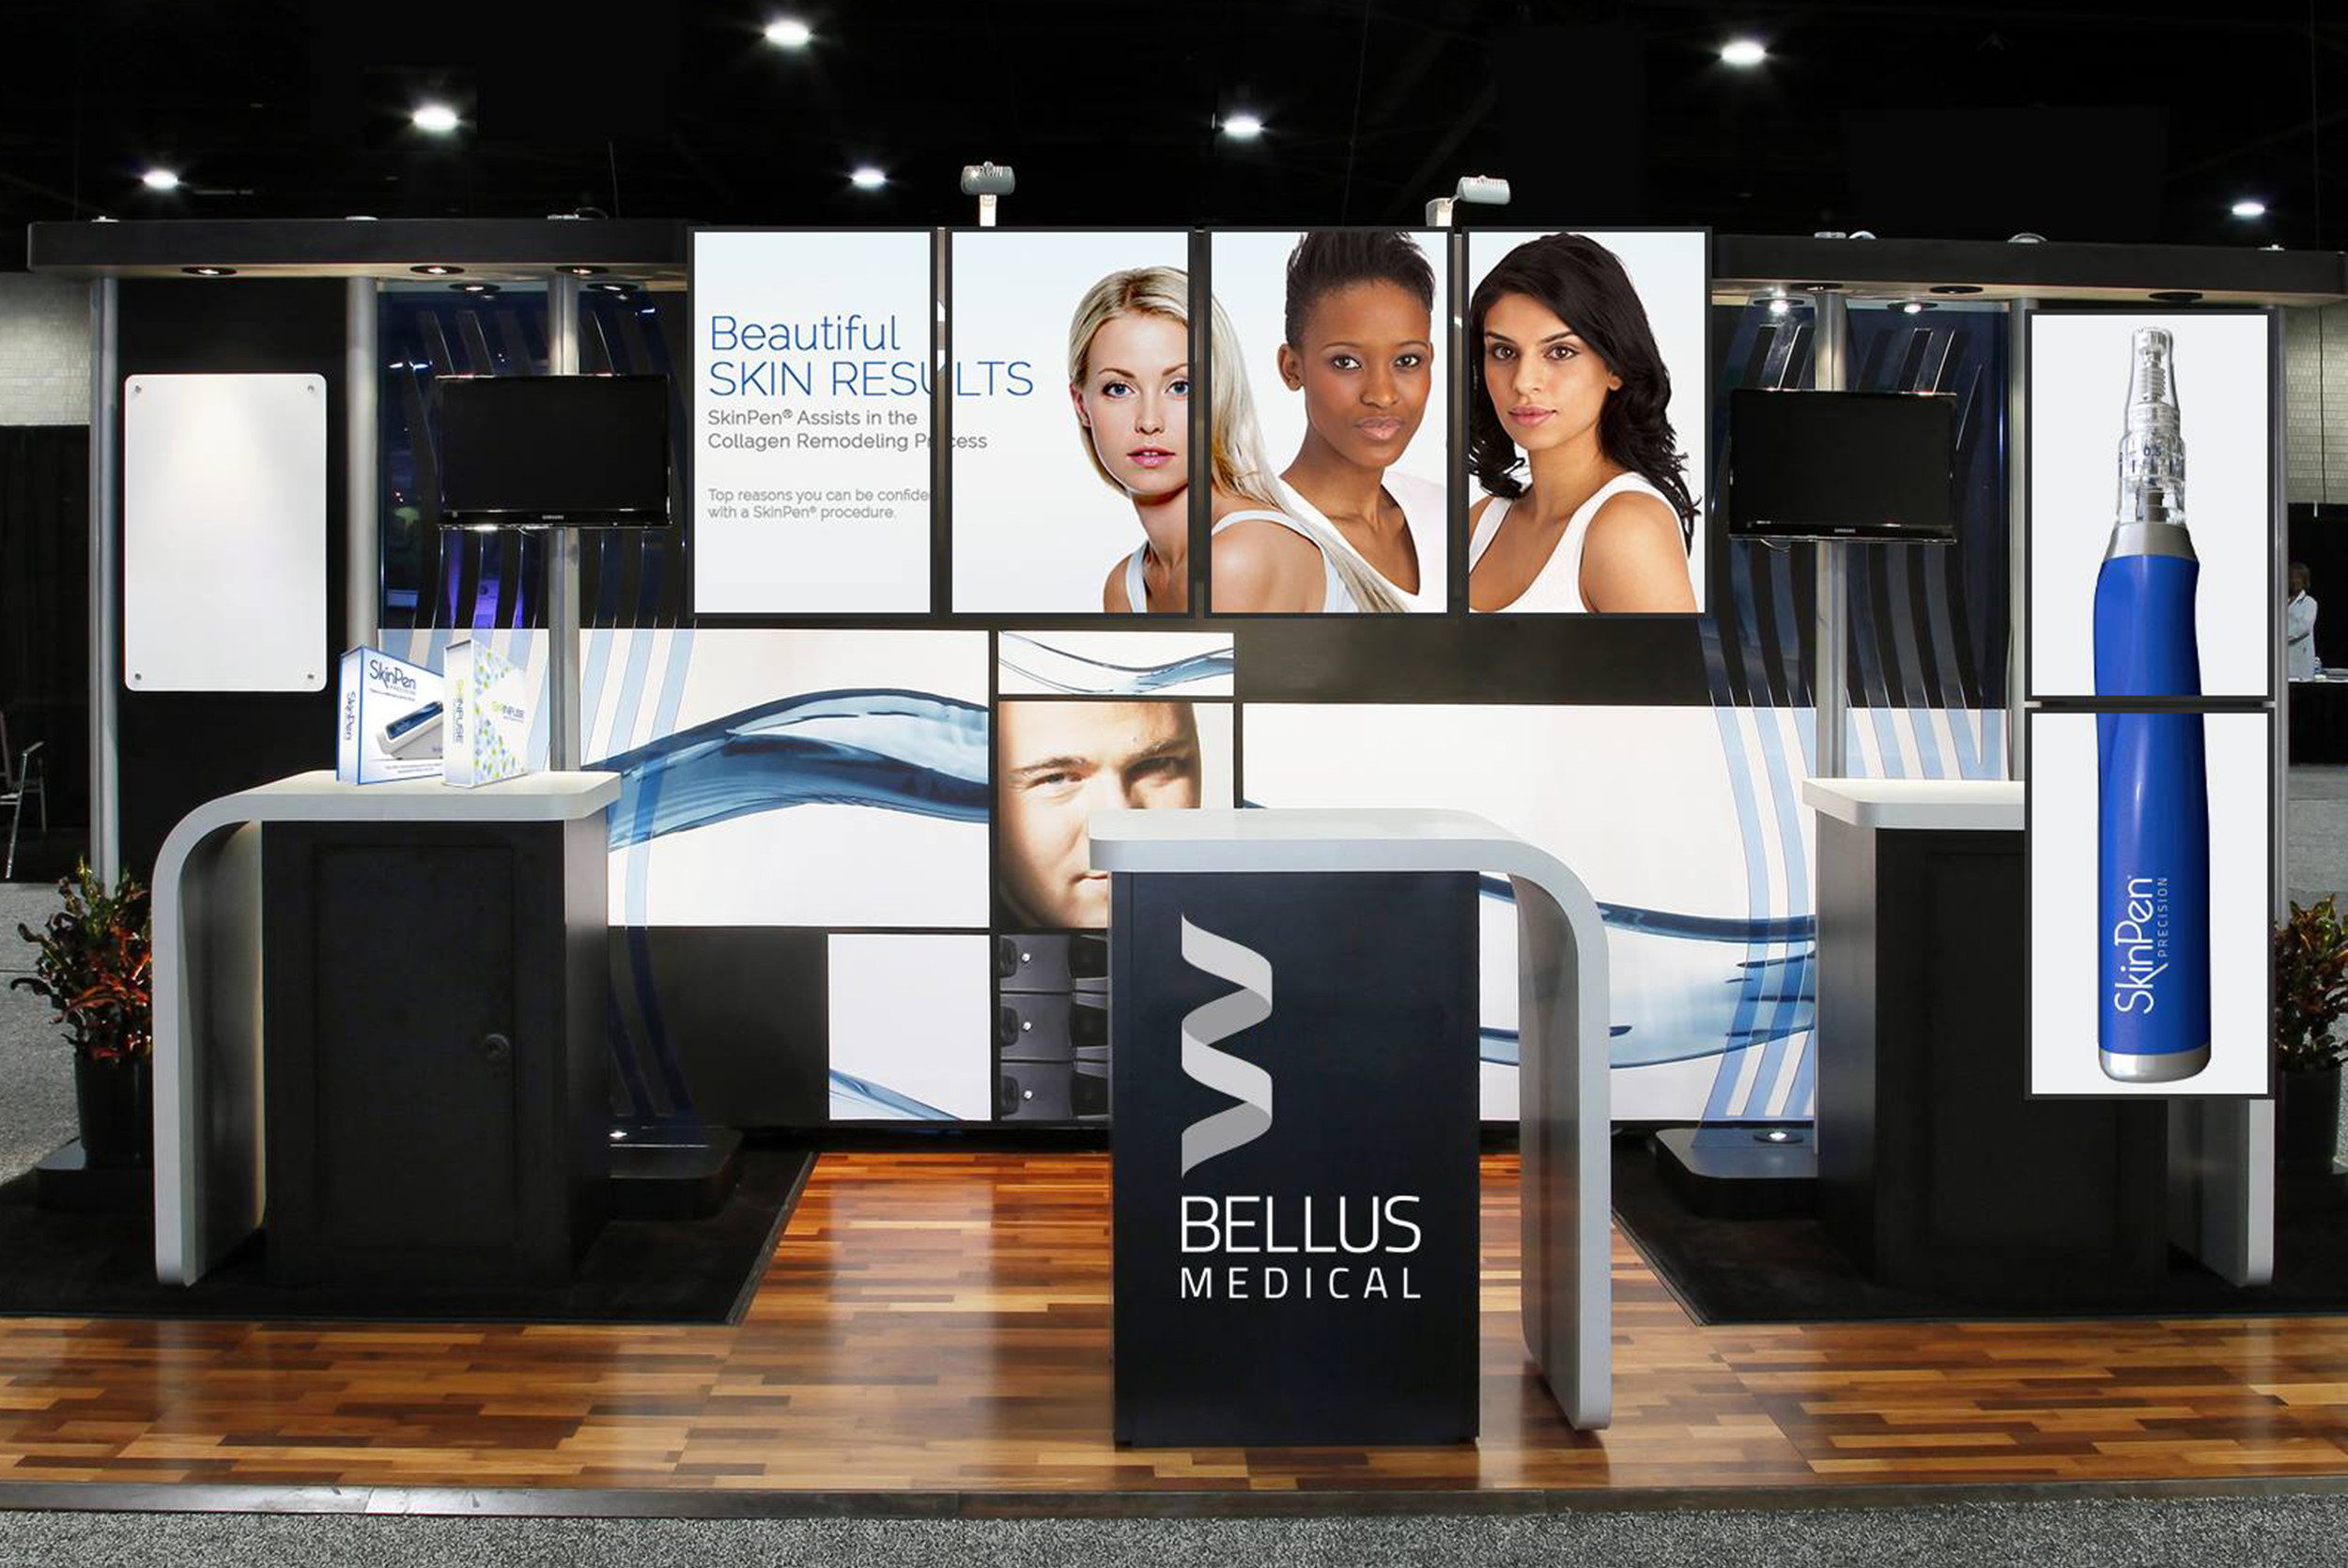 event-trade-show-booth-graphic-design.jpg